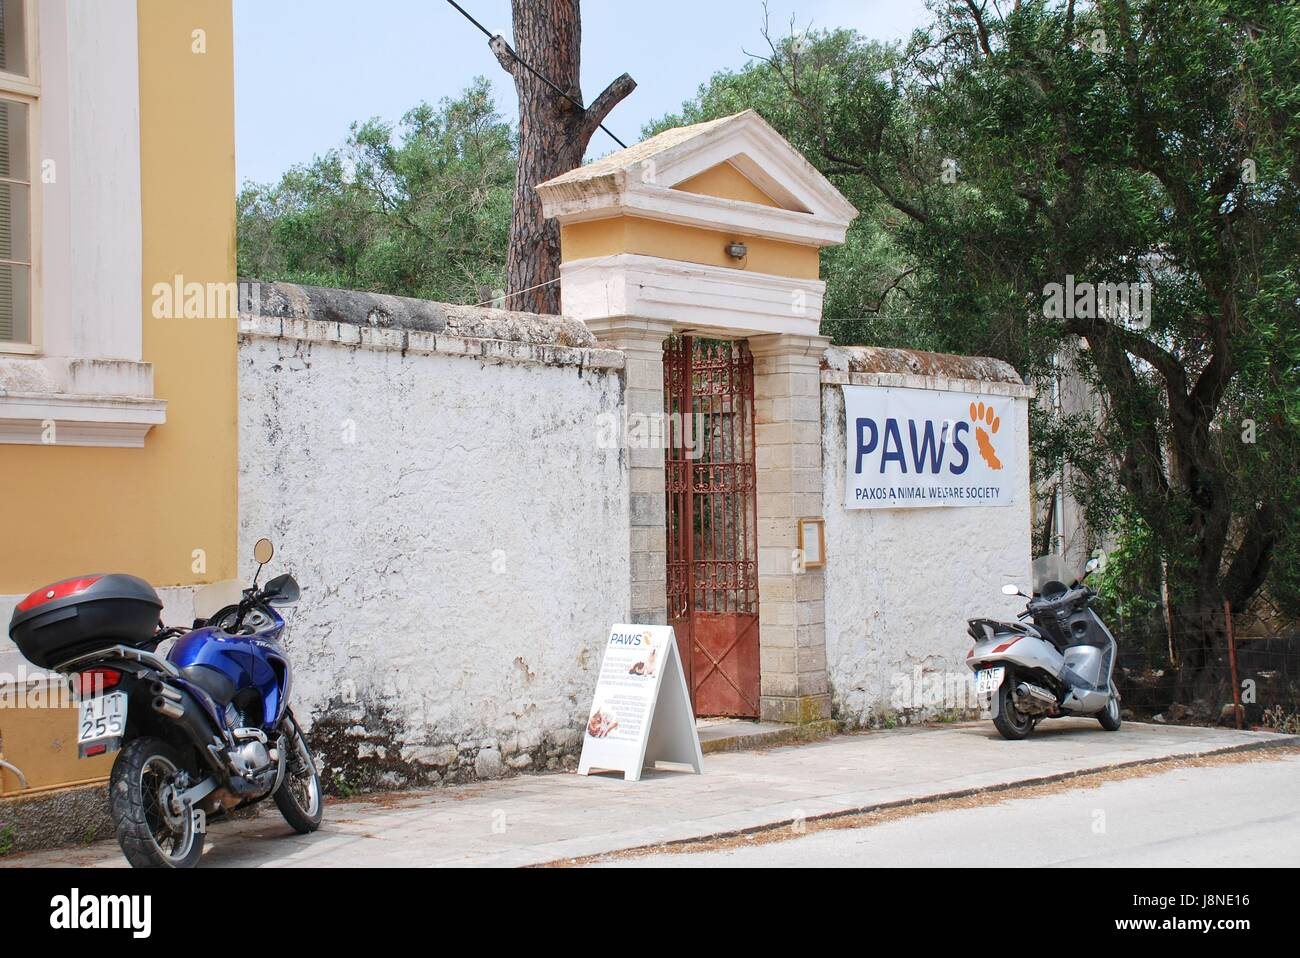 Exterior of the PAWS (Paxos Animal Welfare Society) clinic at Magazia on the Greek island of Paxos on June 18, 2014. - Stock Image